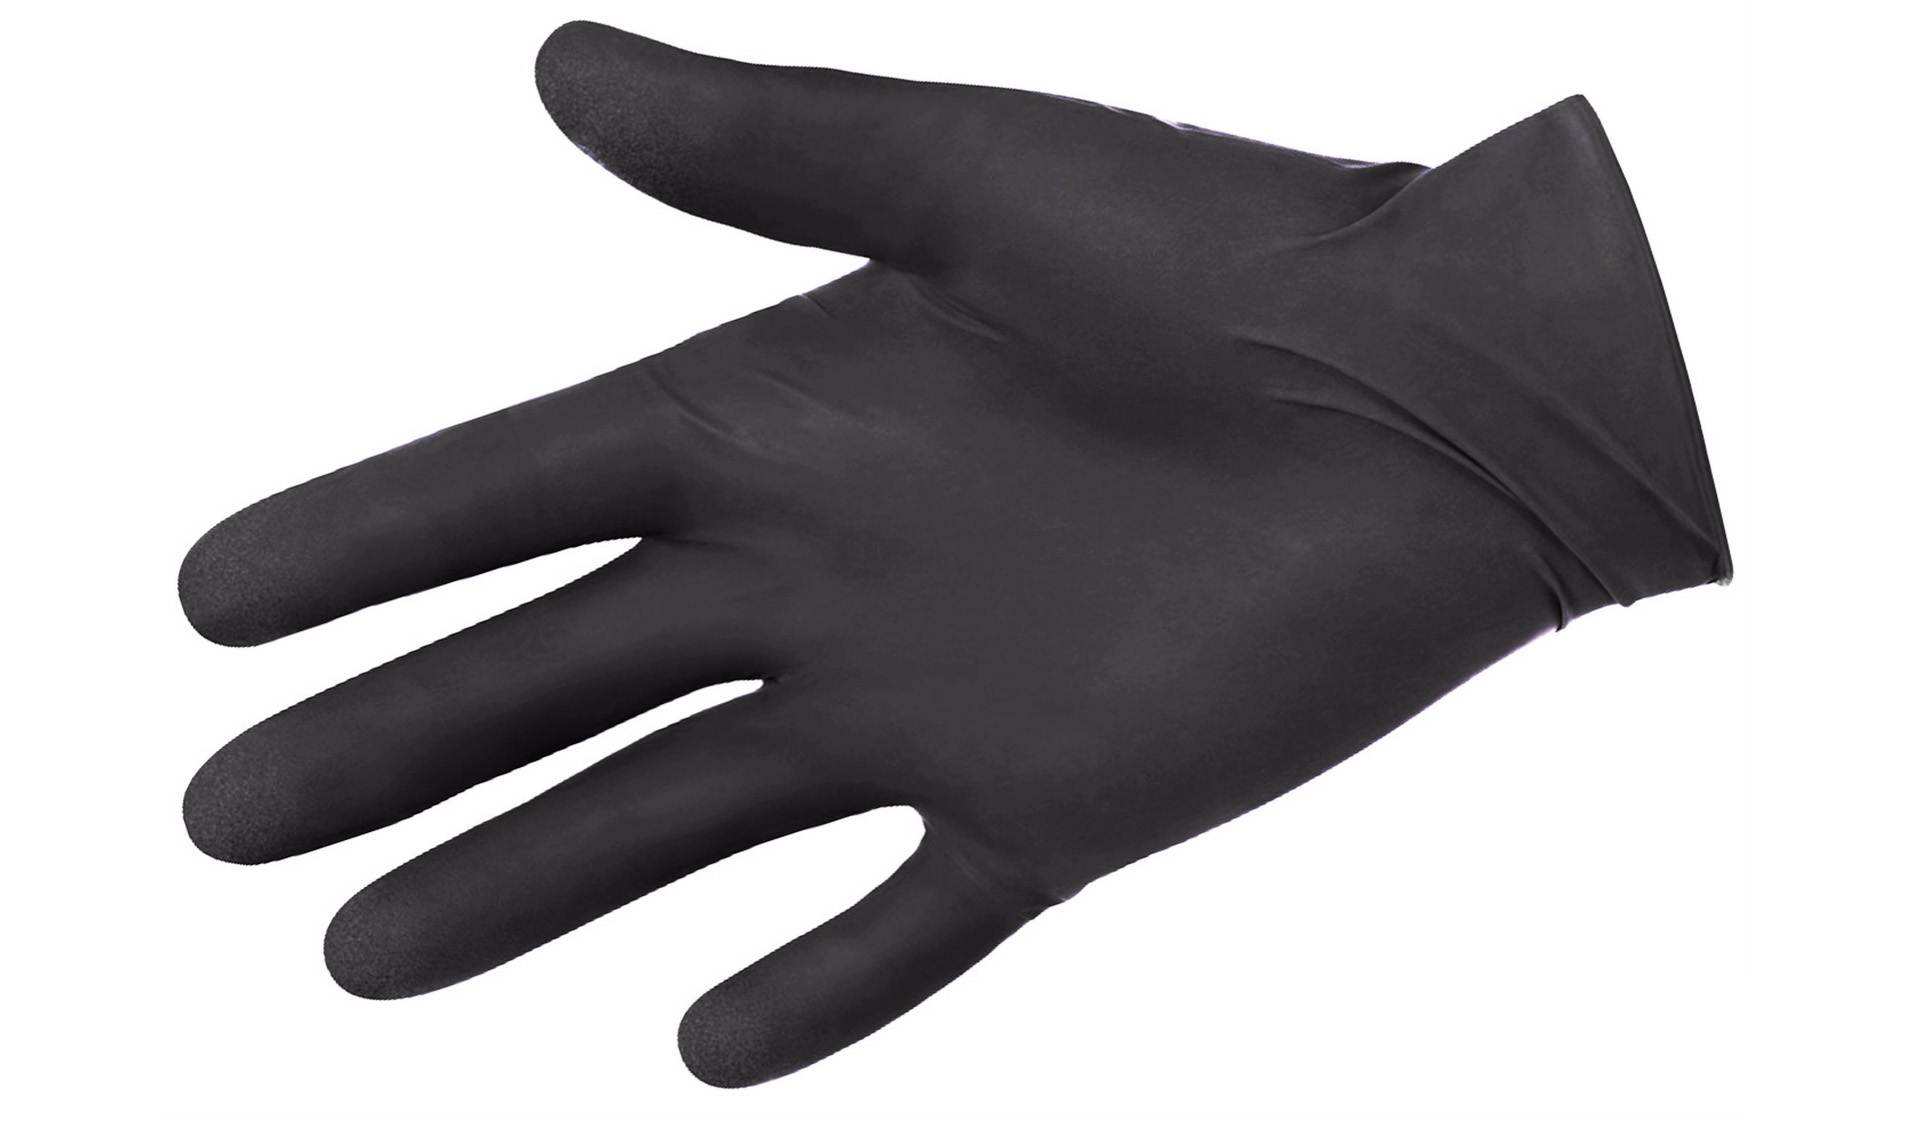 X-Tools Nitrile Mechanic Gloves | Handsker